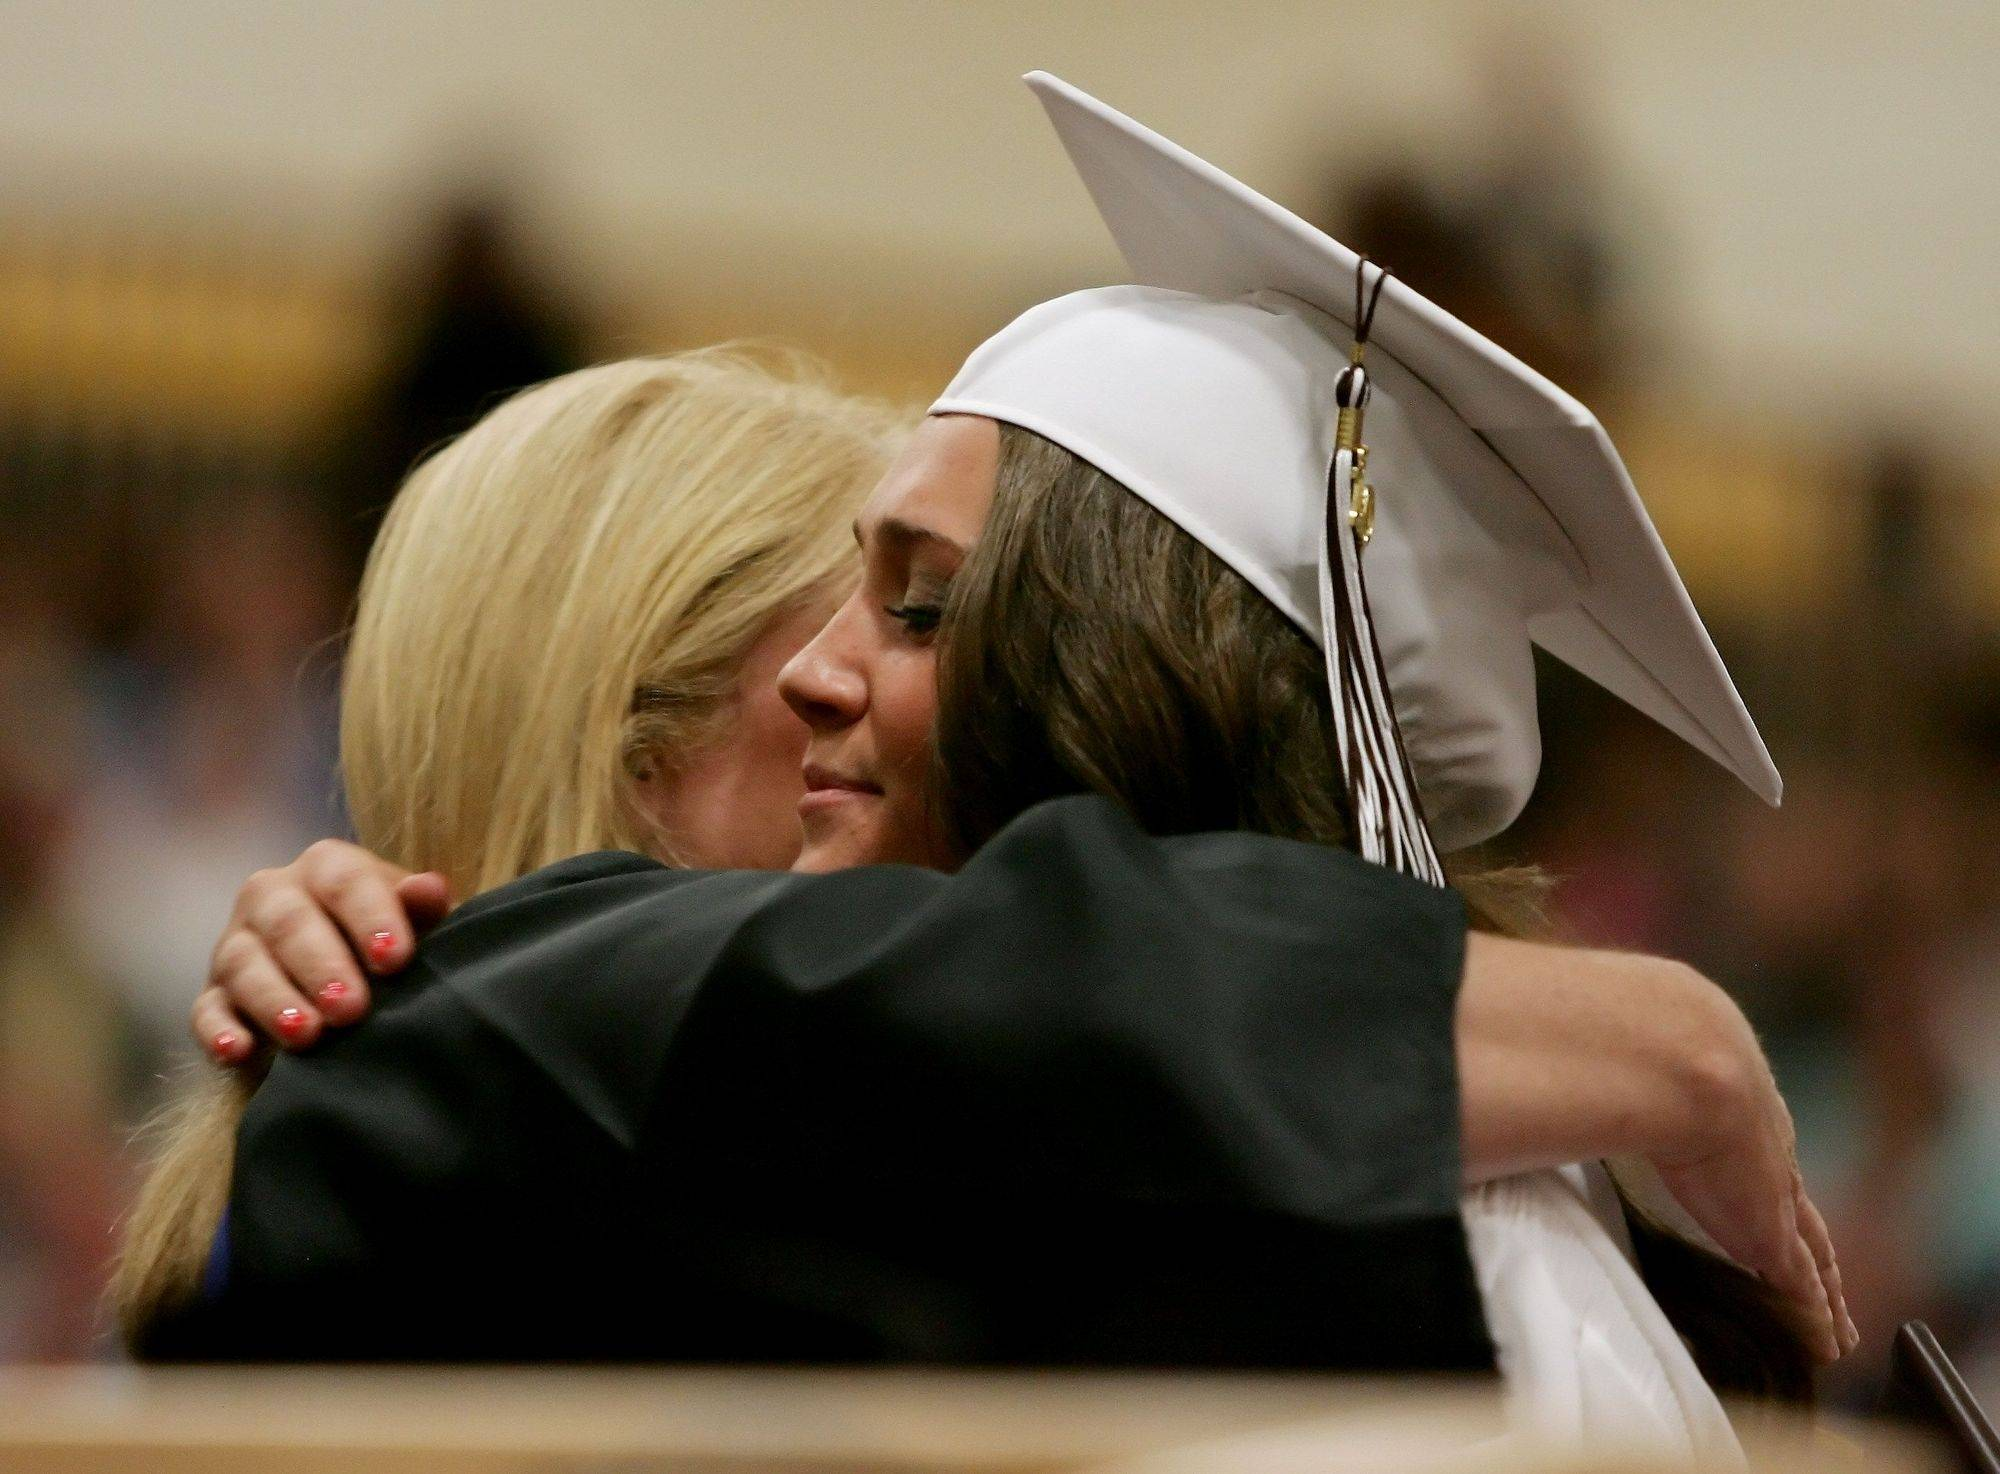 Kelly Brennan hugs her mother and faculty member, Catherine, as she receives her diploma during the graduation ceremony Thursday at Carmel Catholic High School in Mundelein.